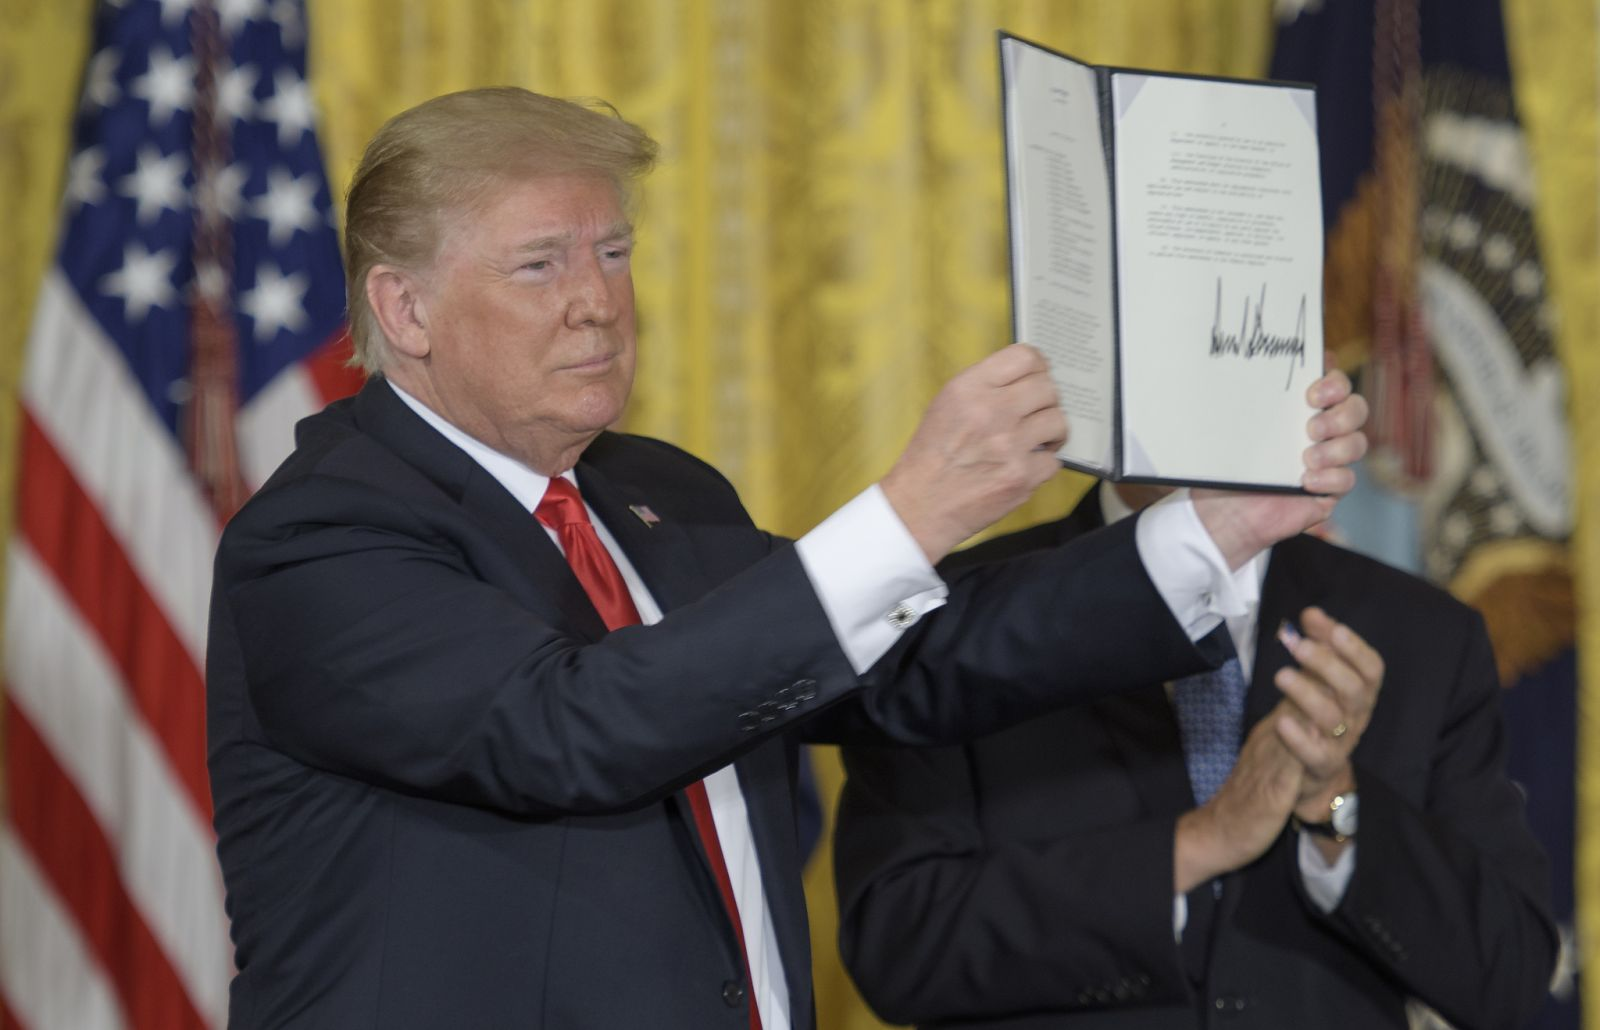 File photo: President Trump holds up the signed Space Policy Directive 3 during the June 18, 2018, meeting of the National Space Council. Space Policy Directive 4 was signed on Feb. 19, 2019, and calls for the establishment of a U.S. Space Force. Photo Credit: Bill Ingalls / NASA